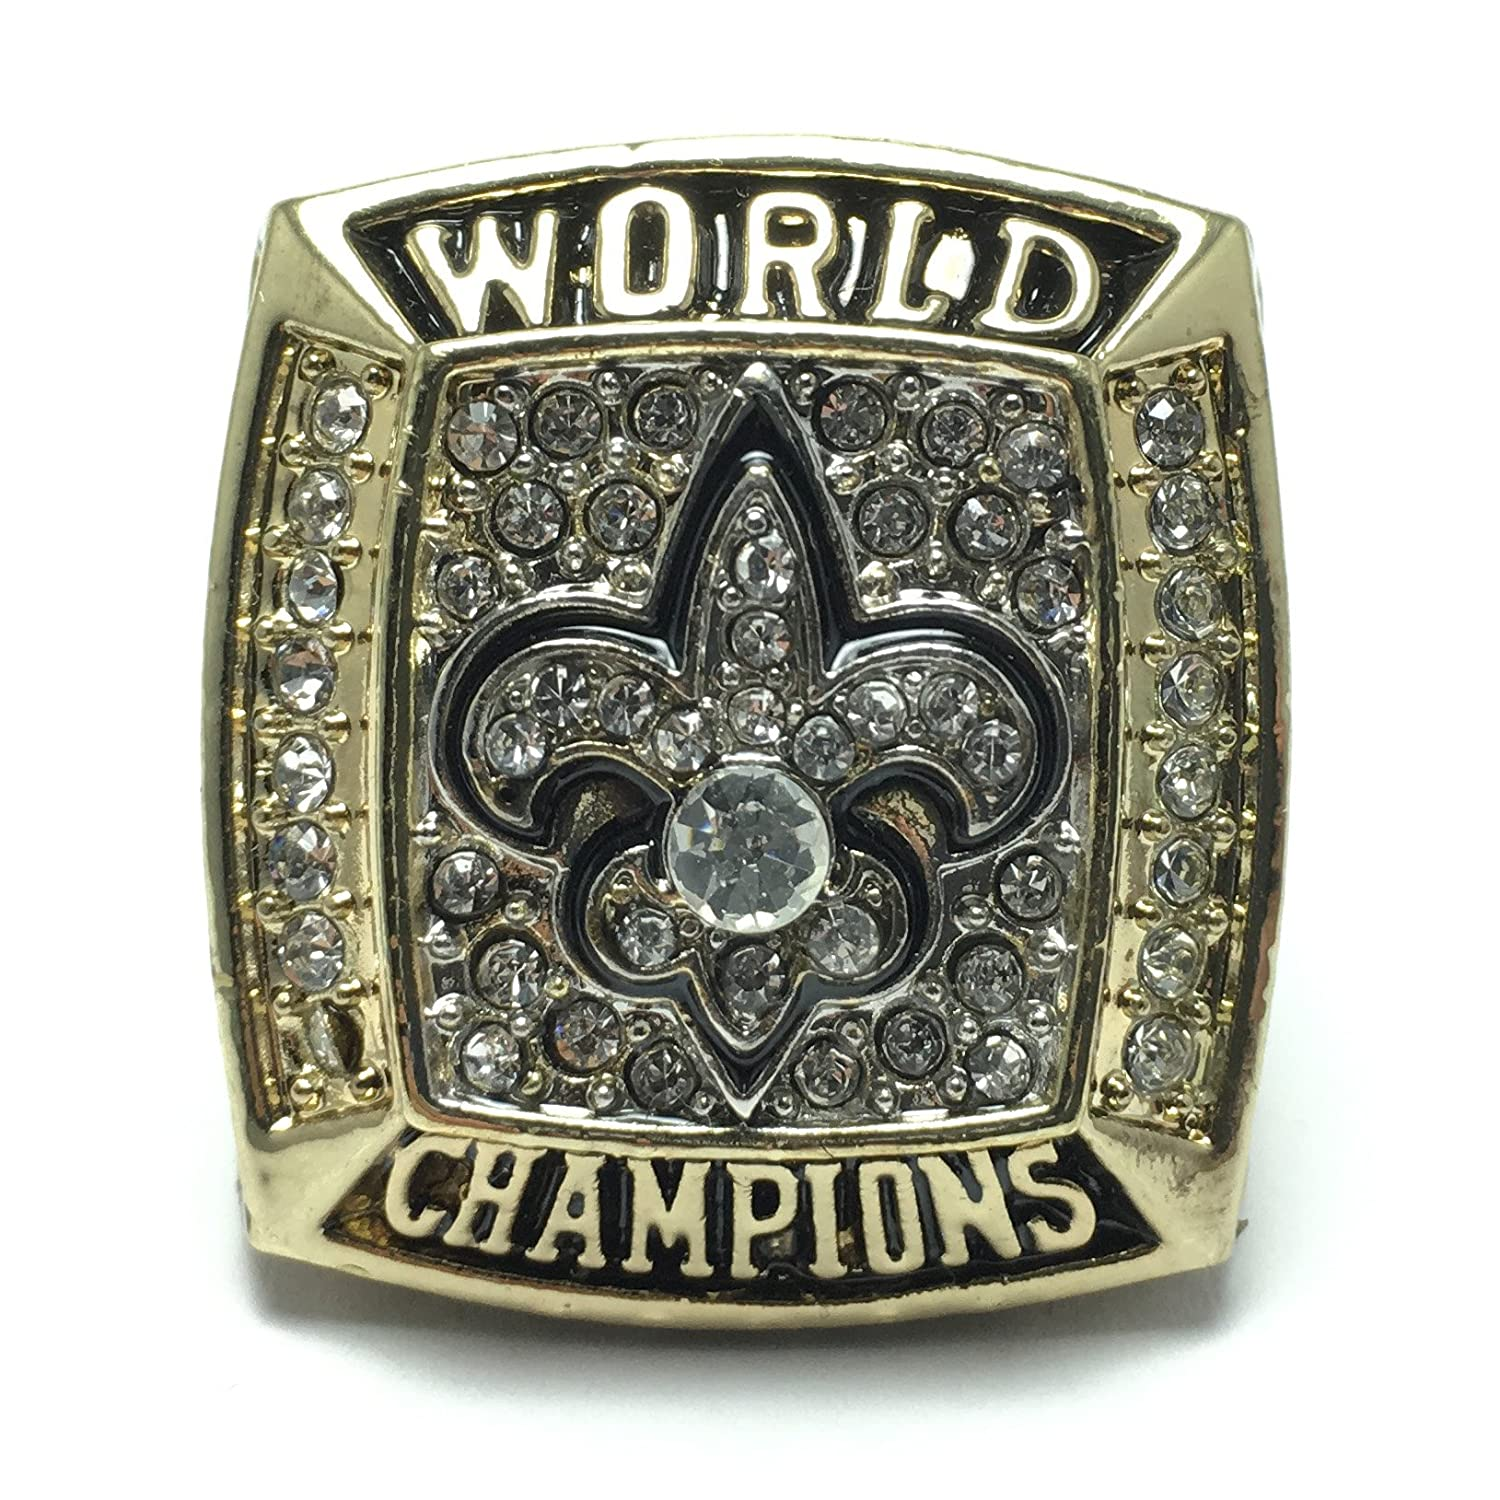 world rings championship saints xliv bowl products orleans ring nfl super new